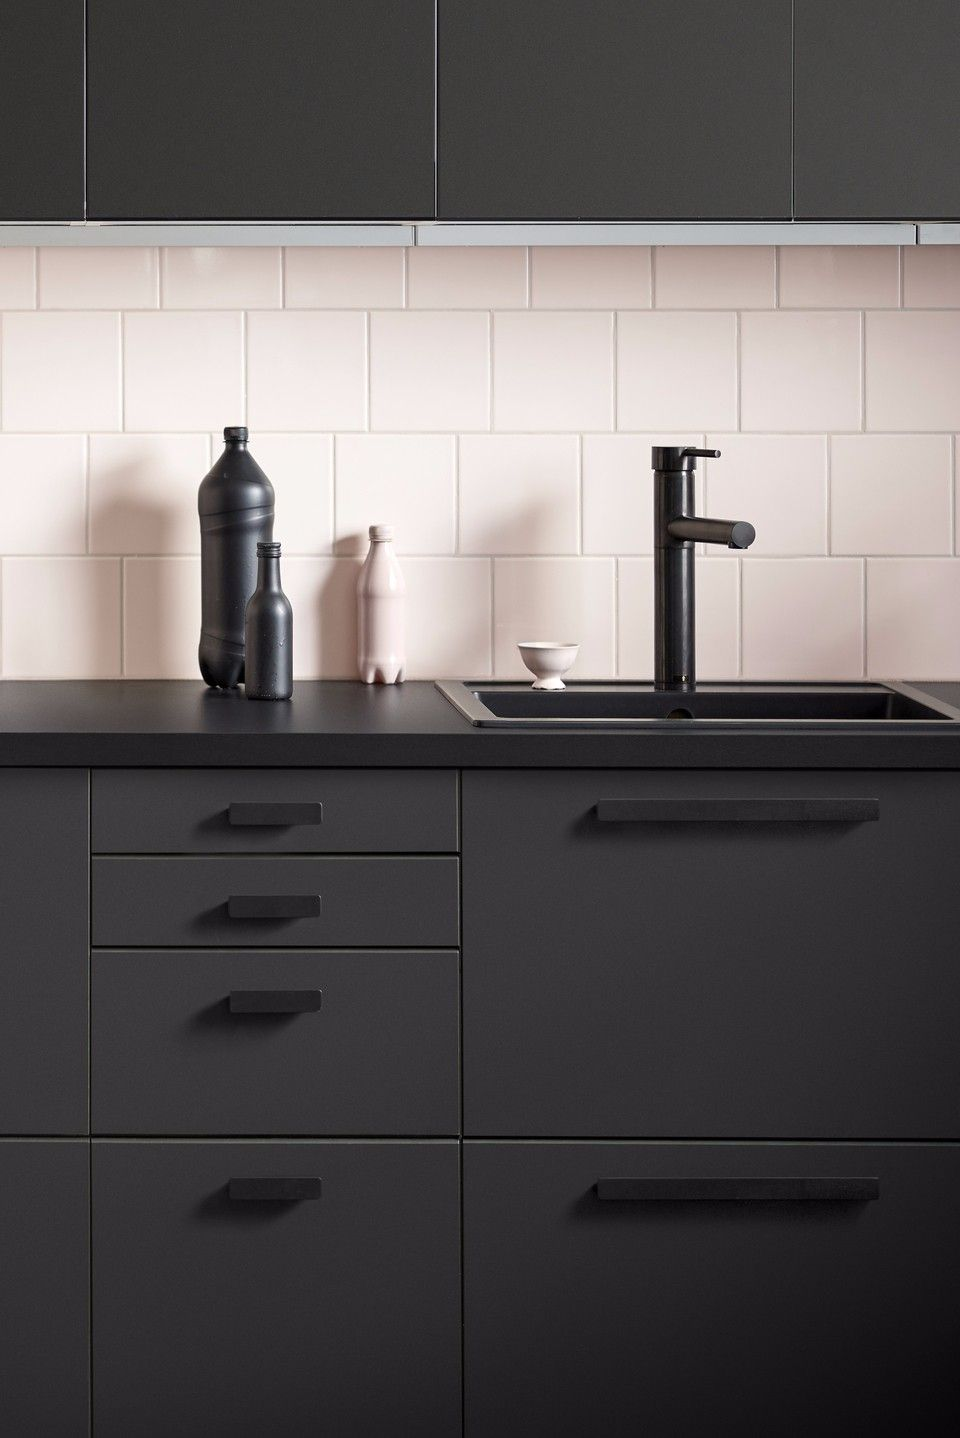 Ikea Just Released The Sleekest Kitchen Cabinets All Made From Recycled Materials Sleek Kitchen Sleek Kitchen Cabinets Black Kitchen Cabinets